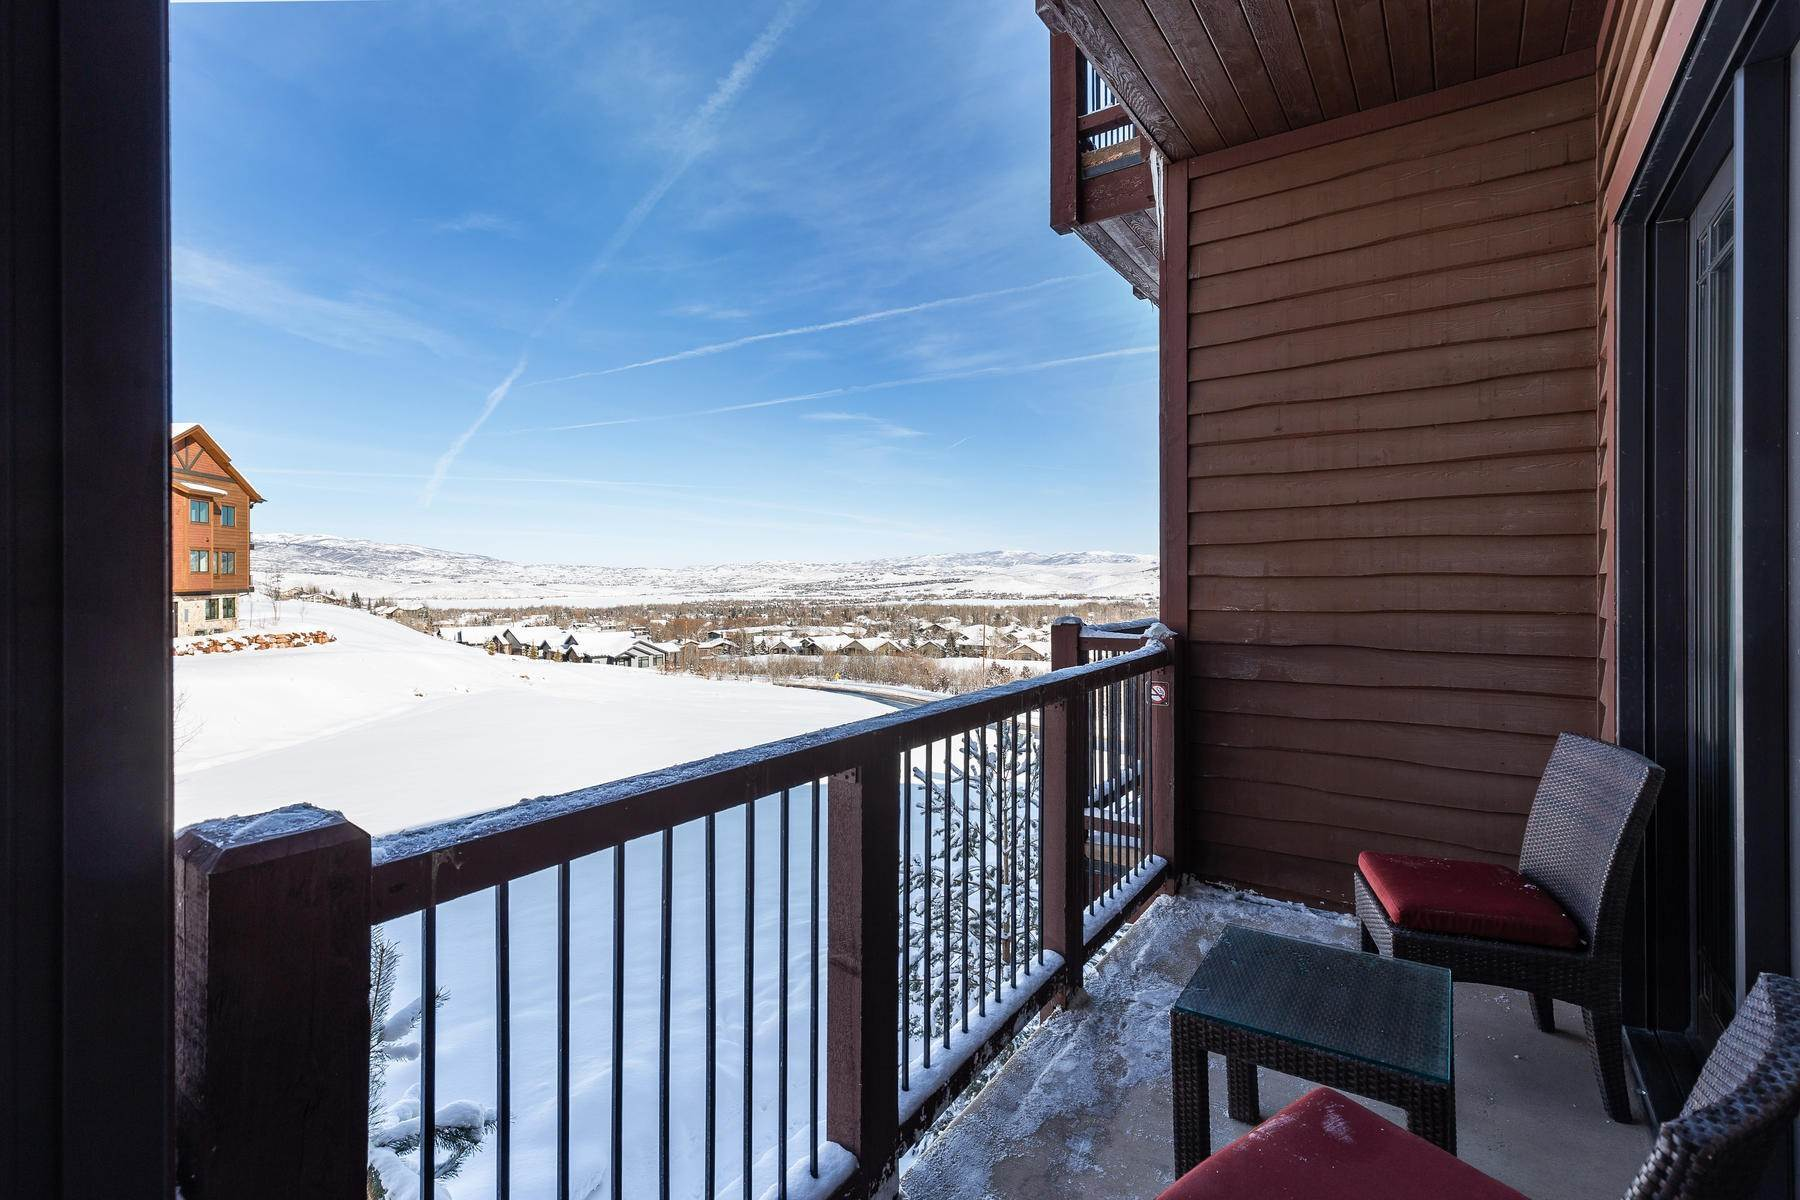 22. Condominiums at 2100 W Frostwood Boulevard #5172 Park City, Utah 84098 United States